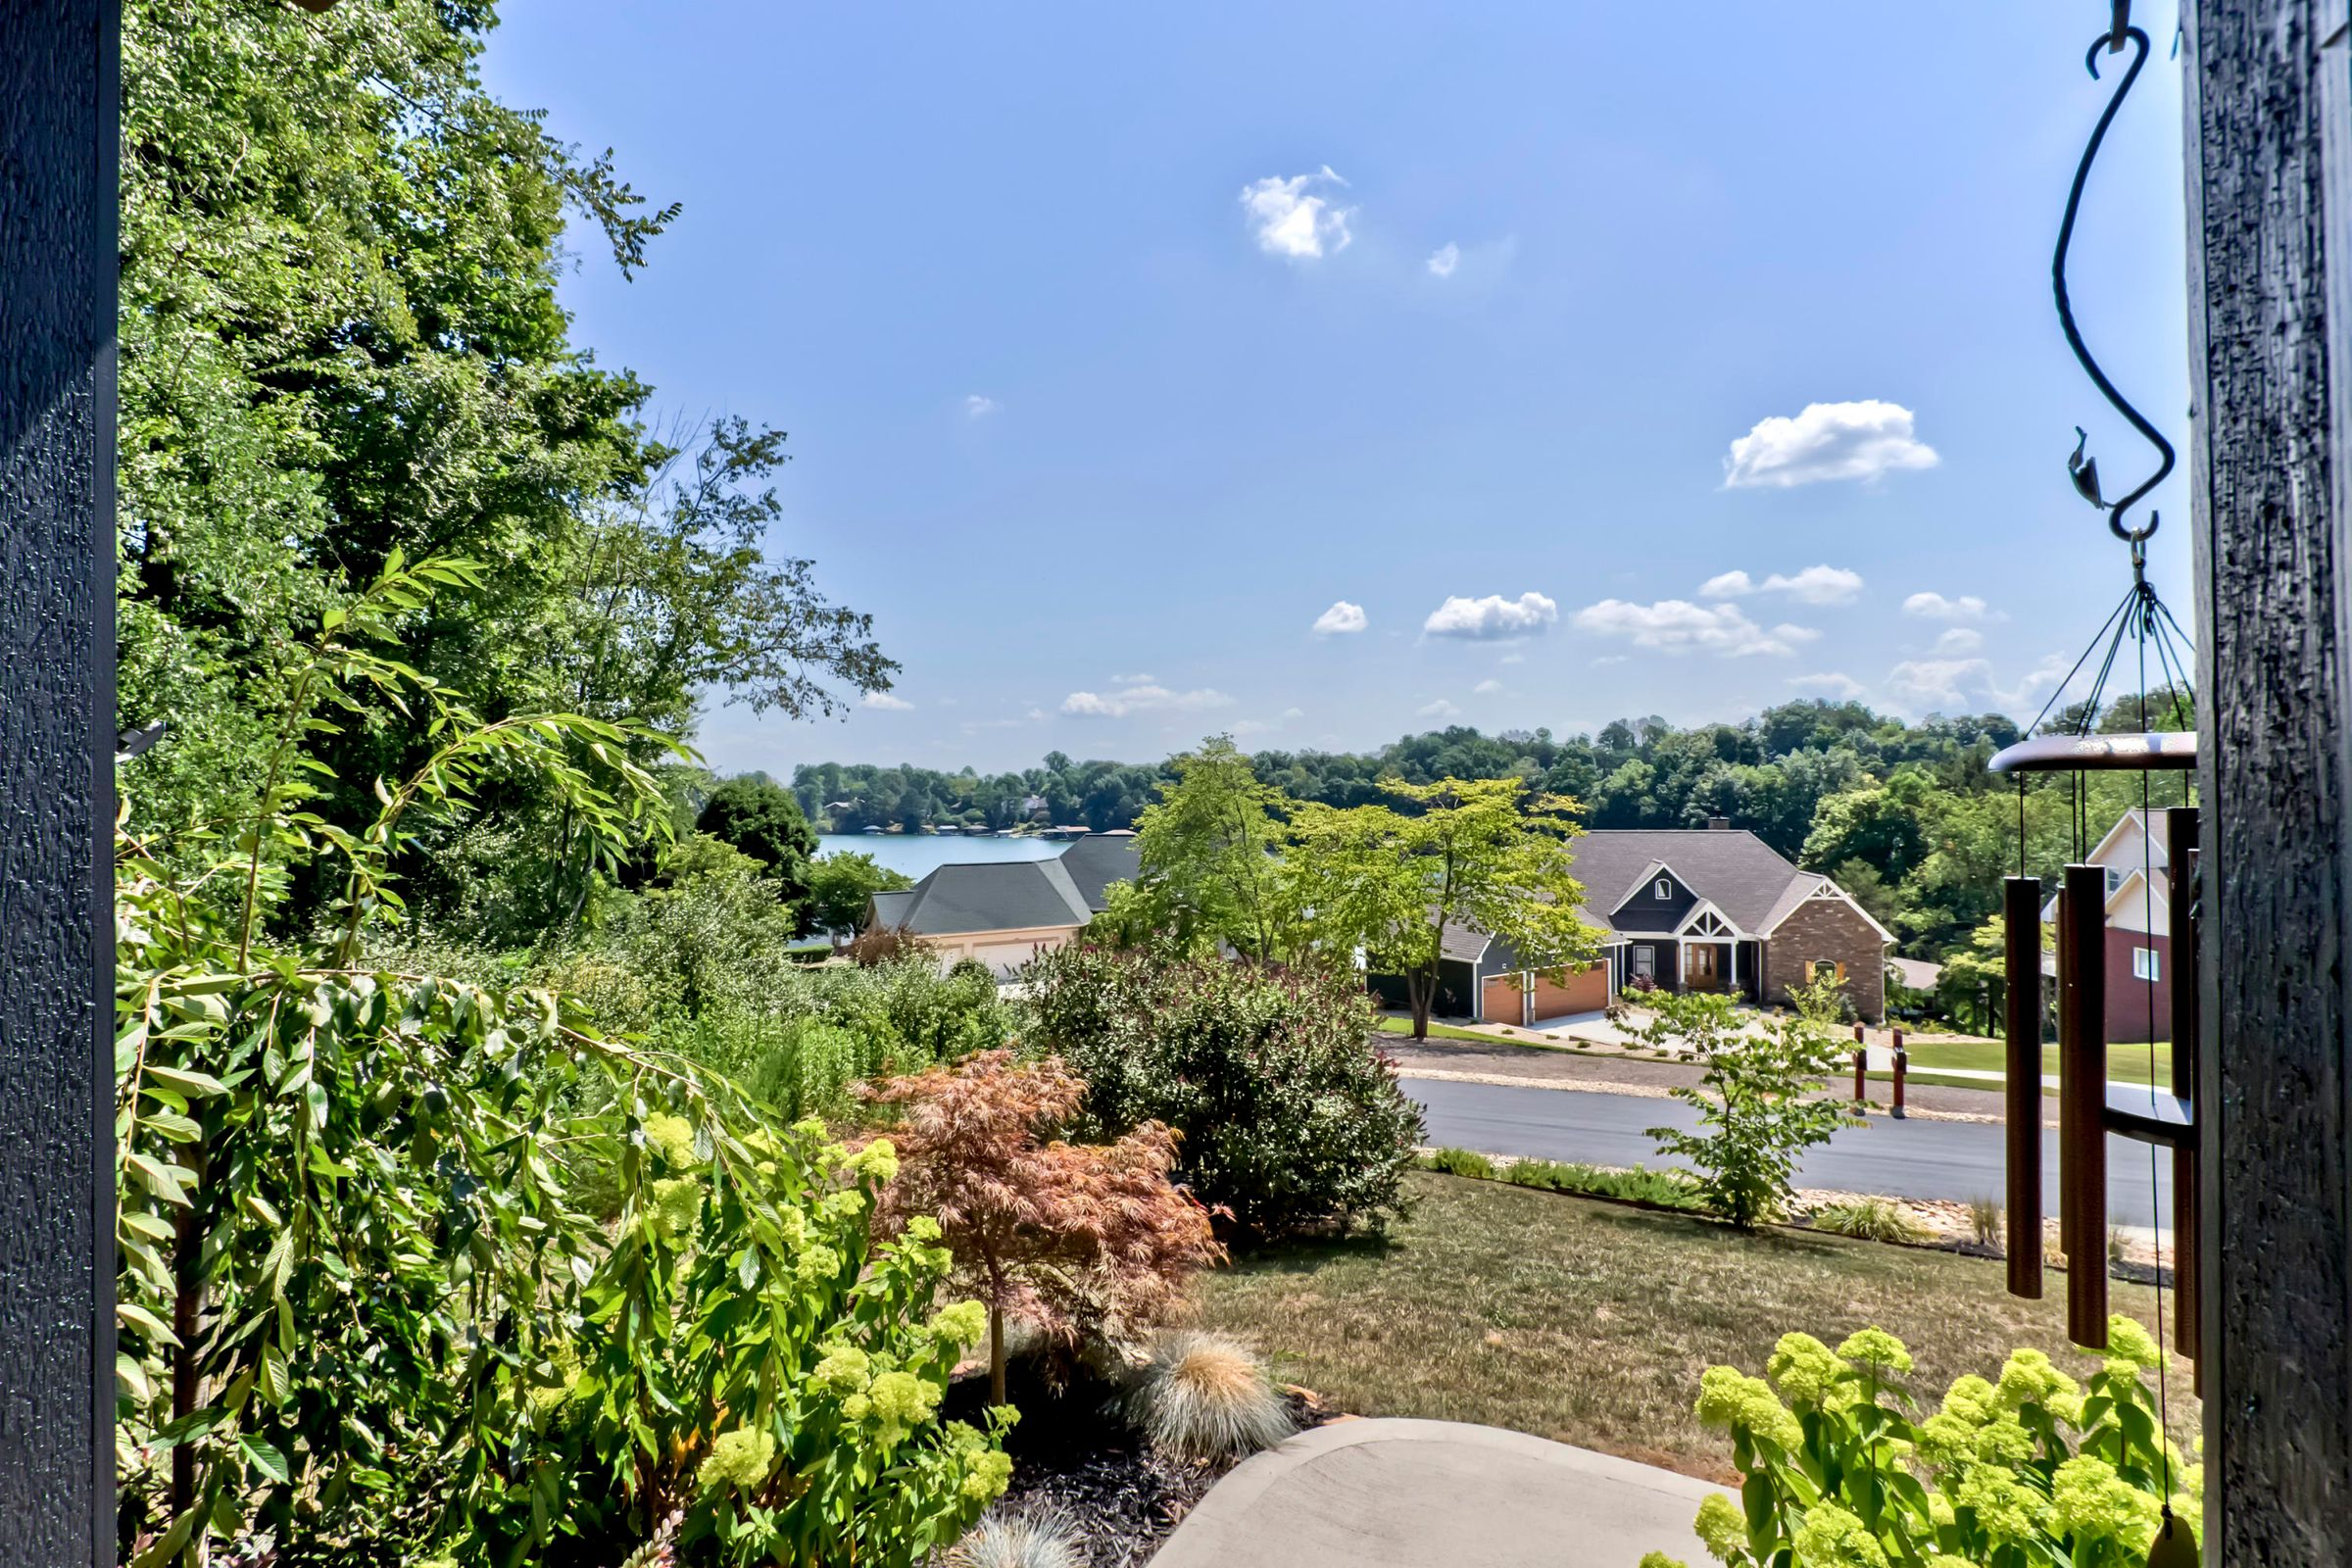 02_InagehiWay_161_FrontPorchView